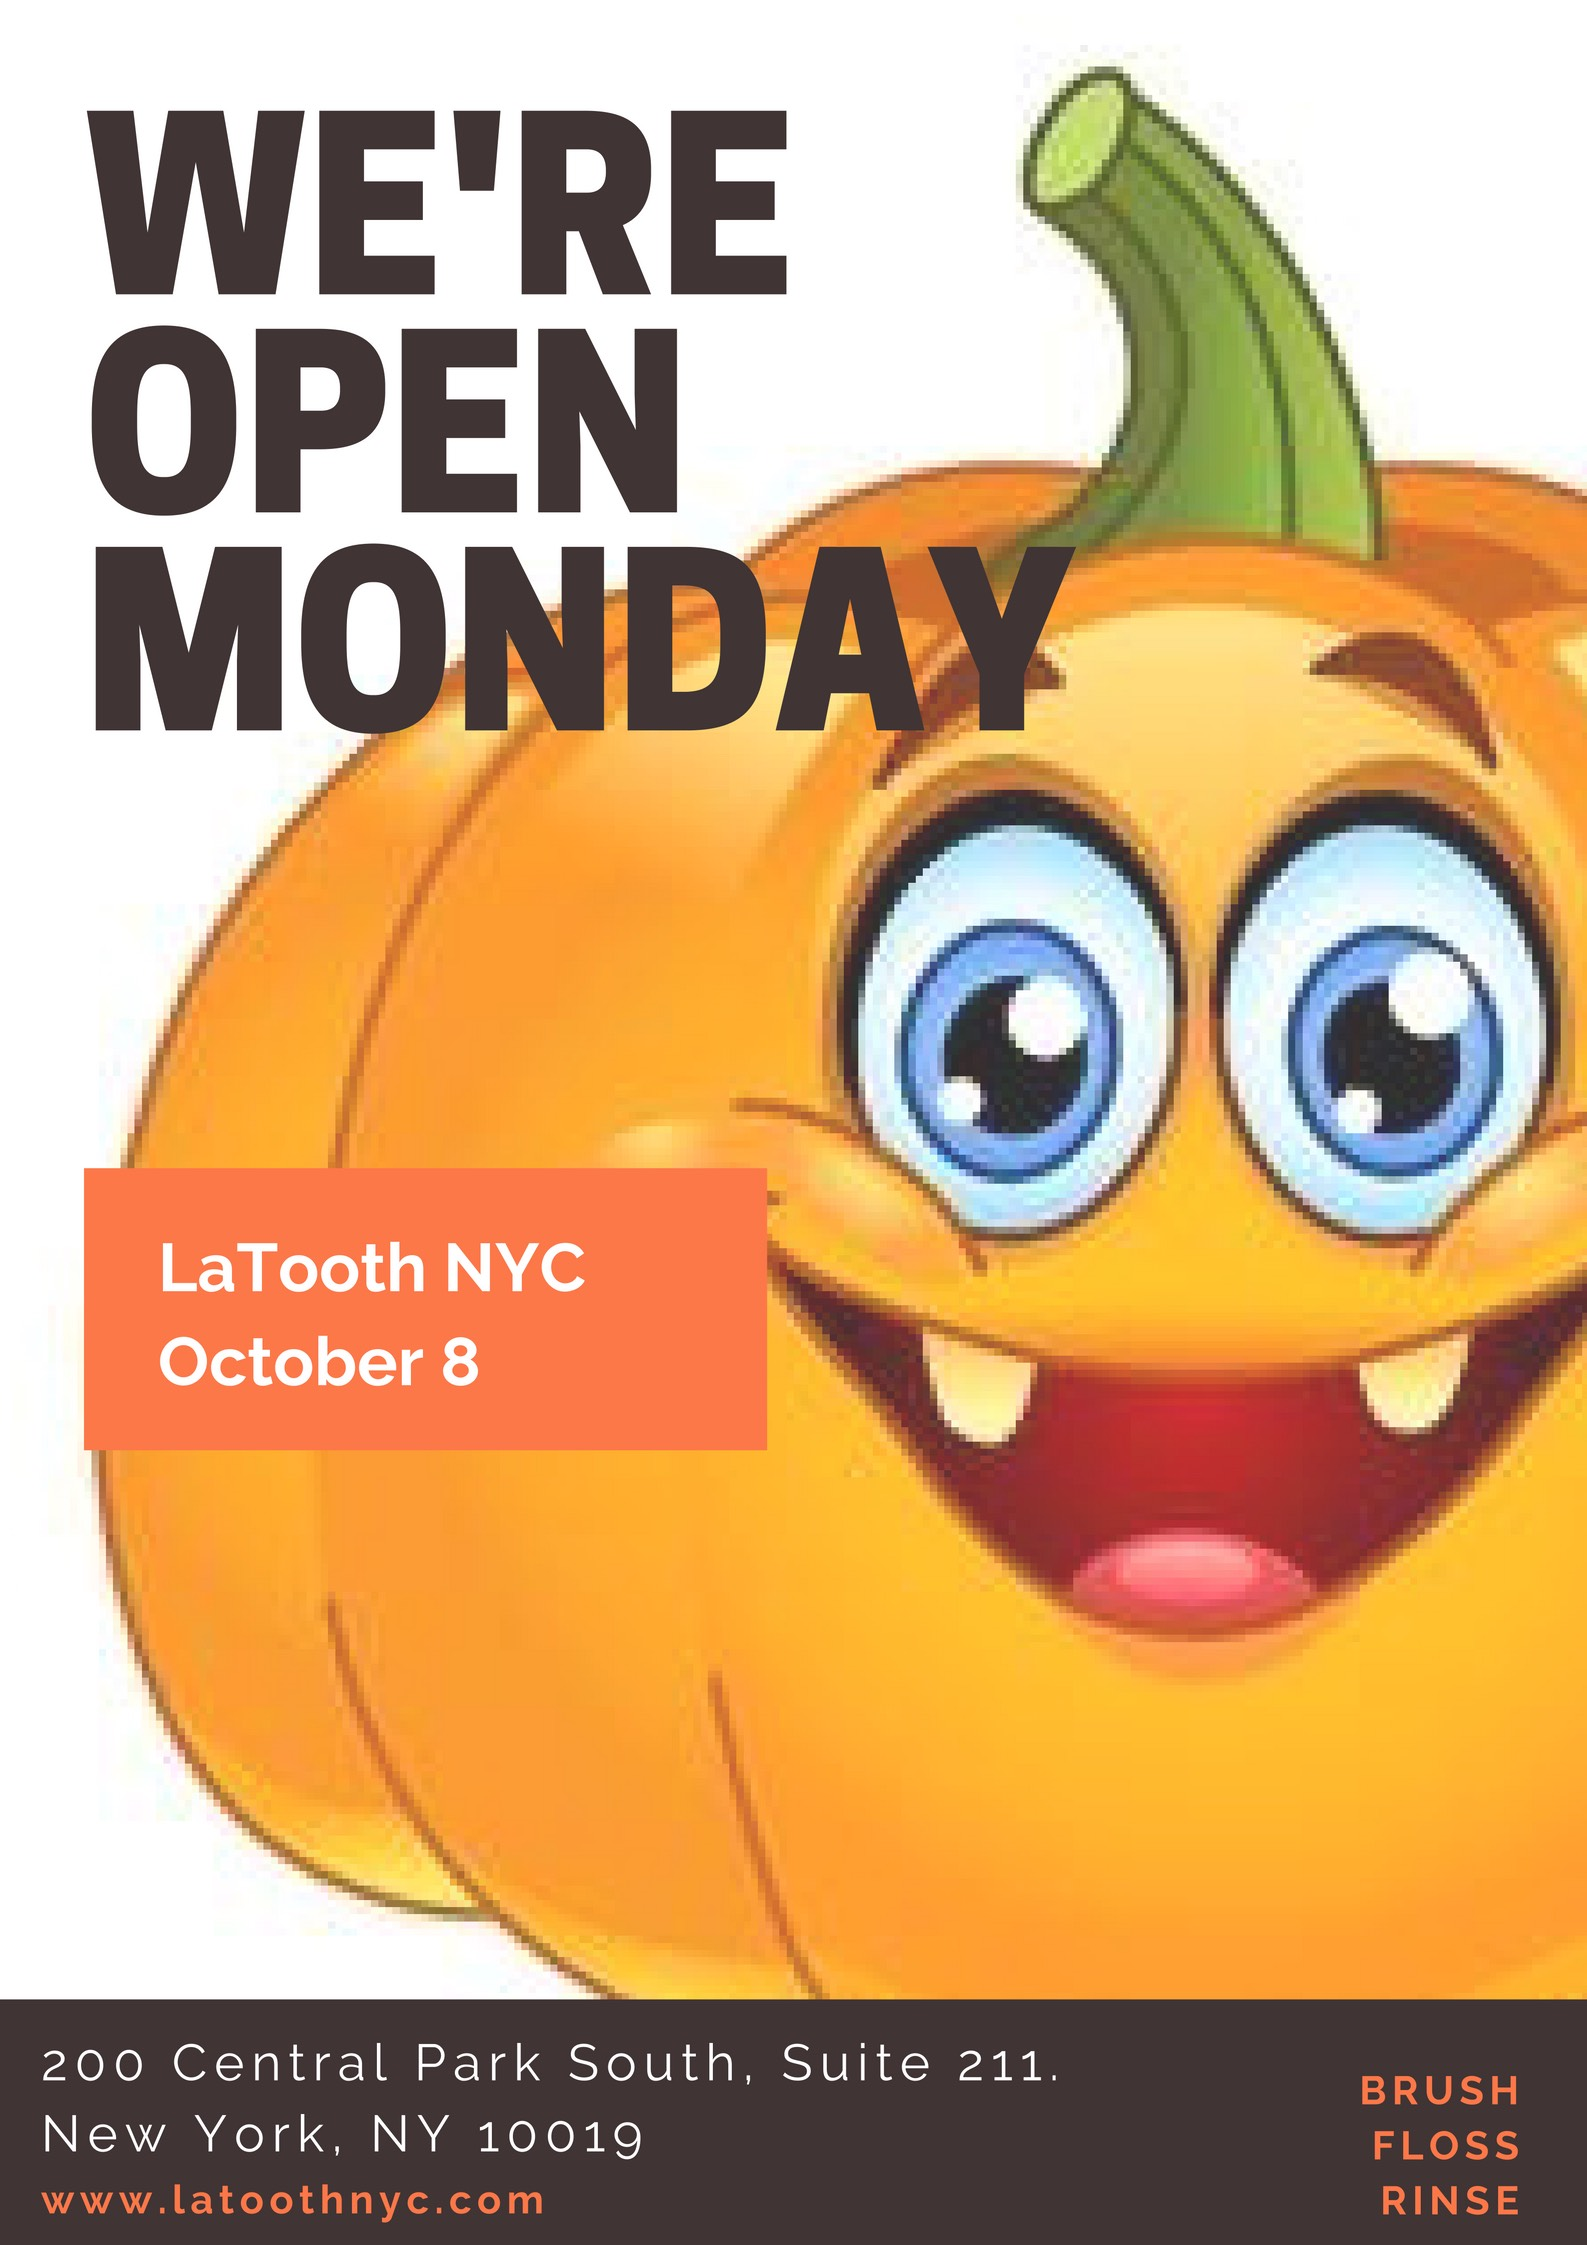 Don't let your smile get like Mr. Pumpkin's. Come see us!